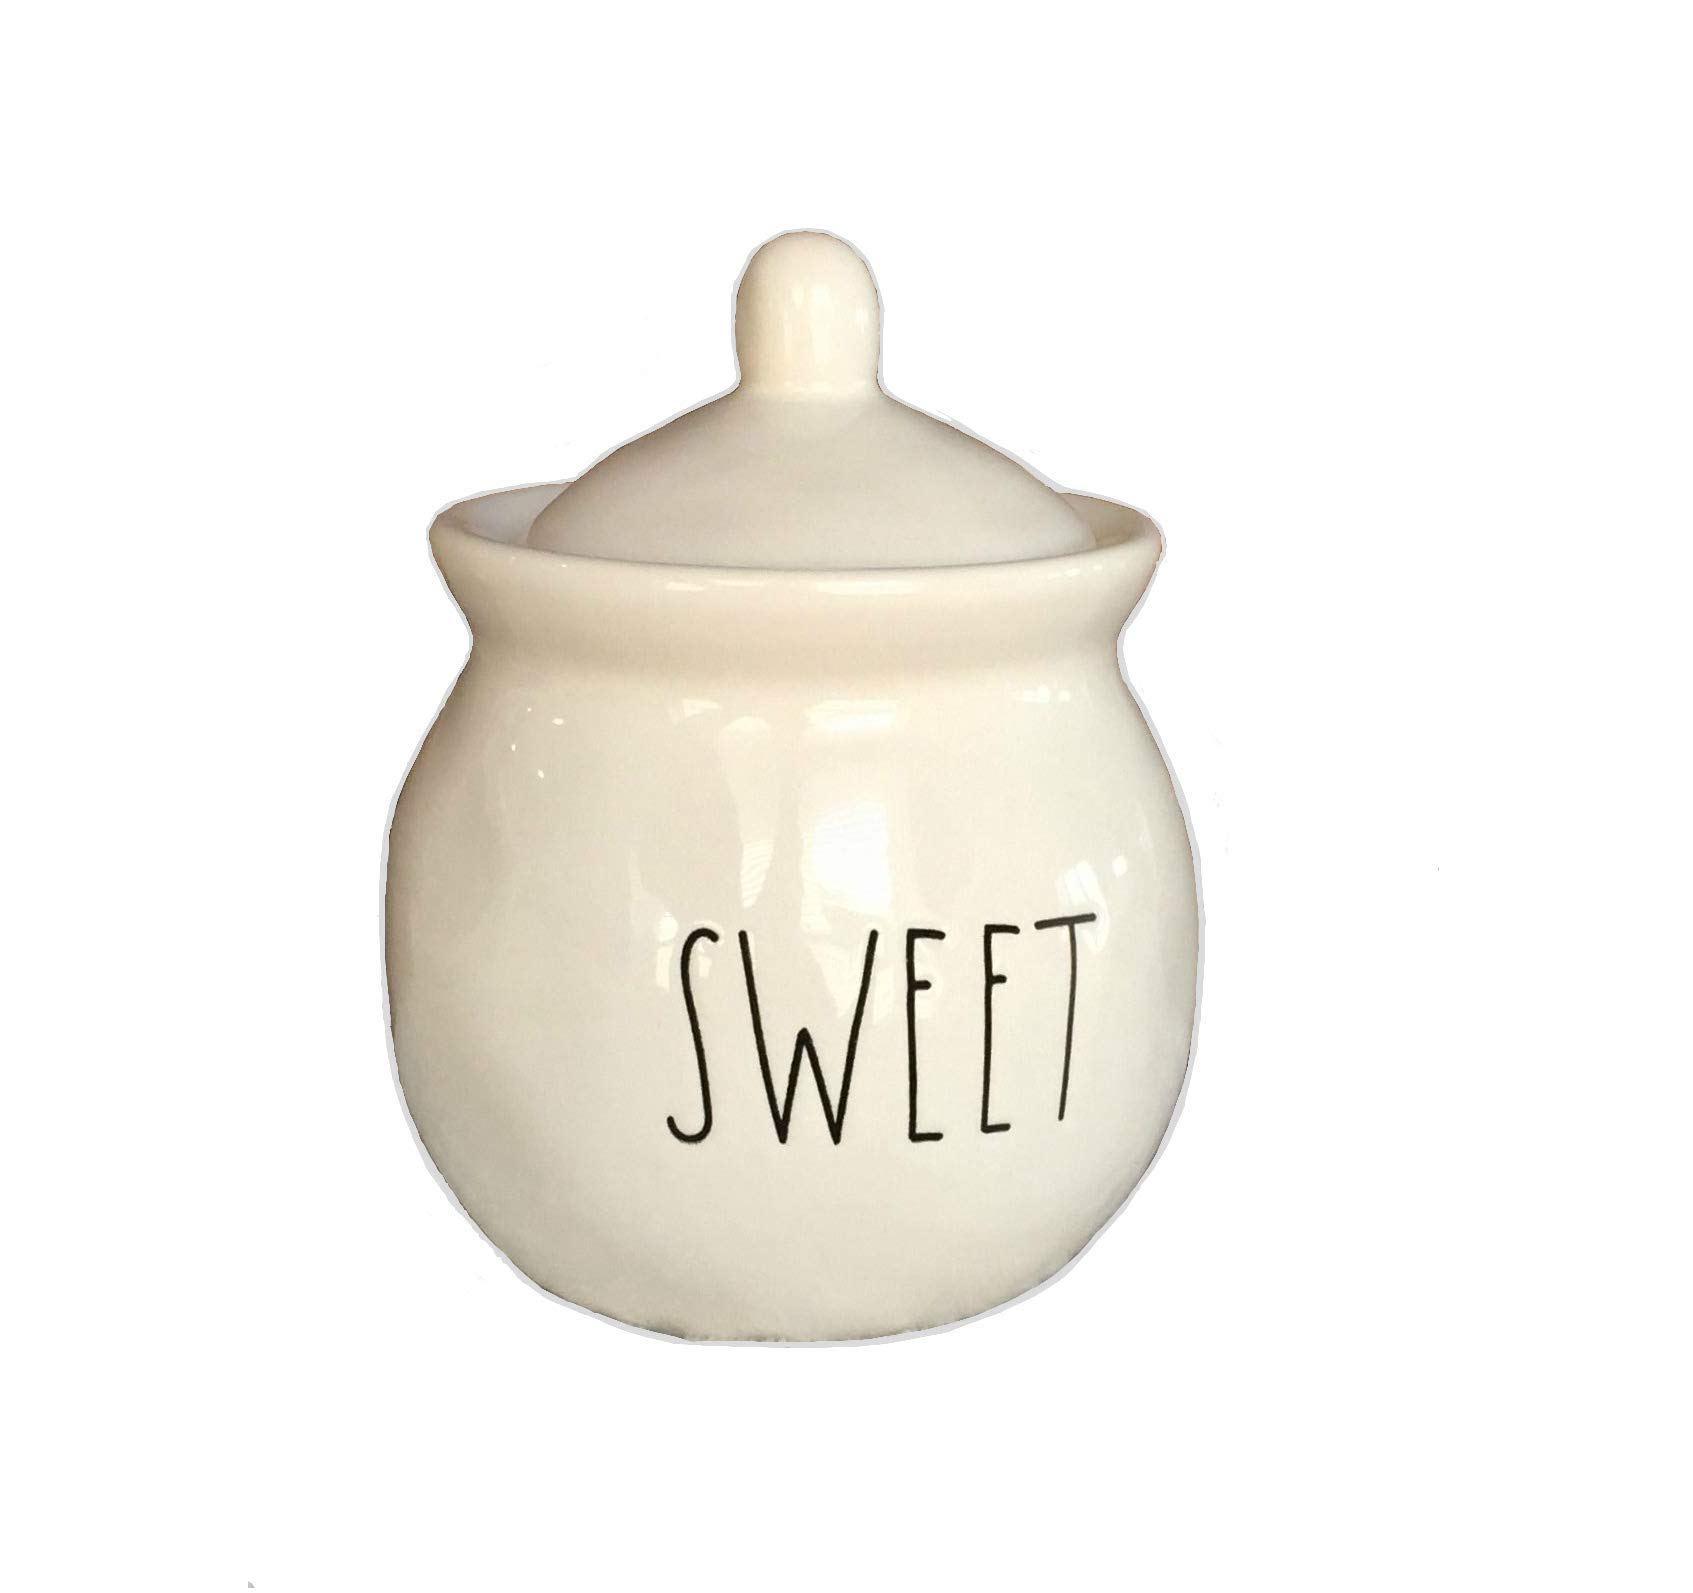 Rae Dunn Ceramic Sugar Pot Bowl Large Letter Sweet